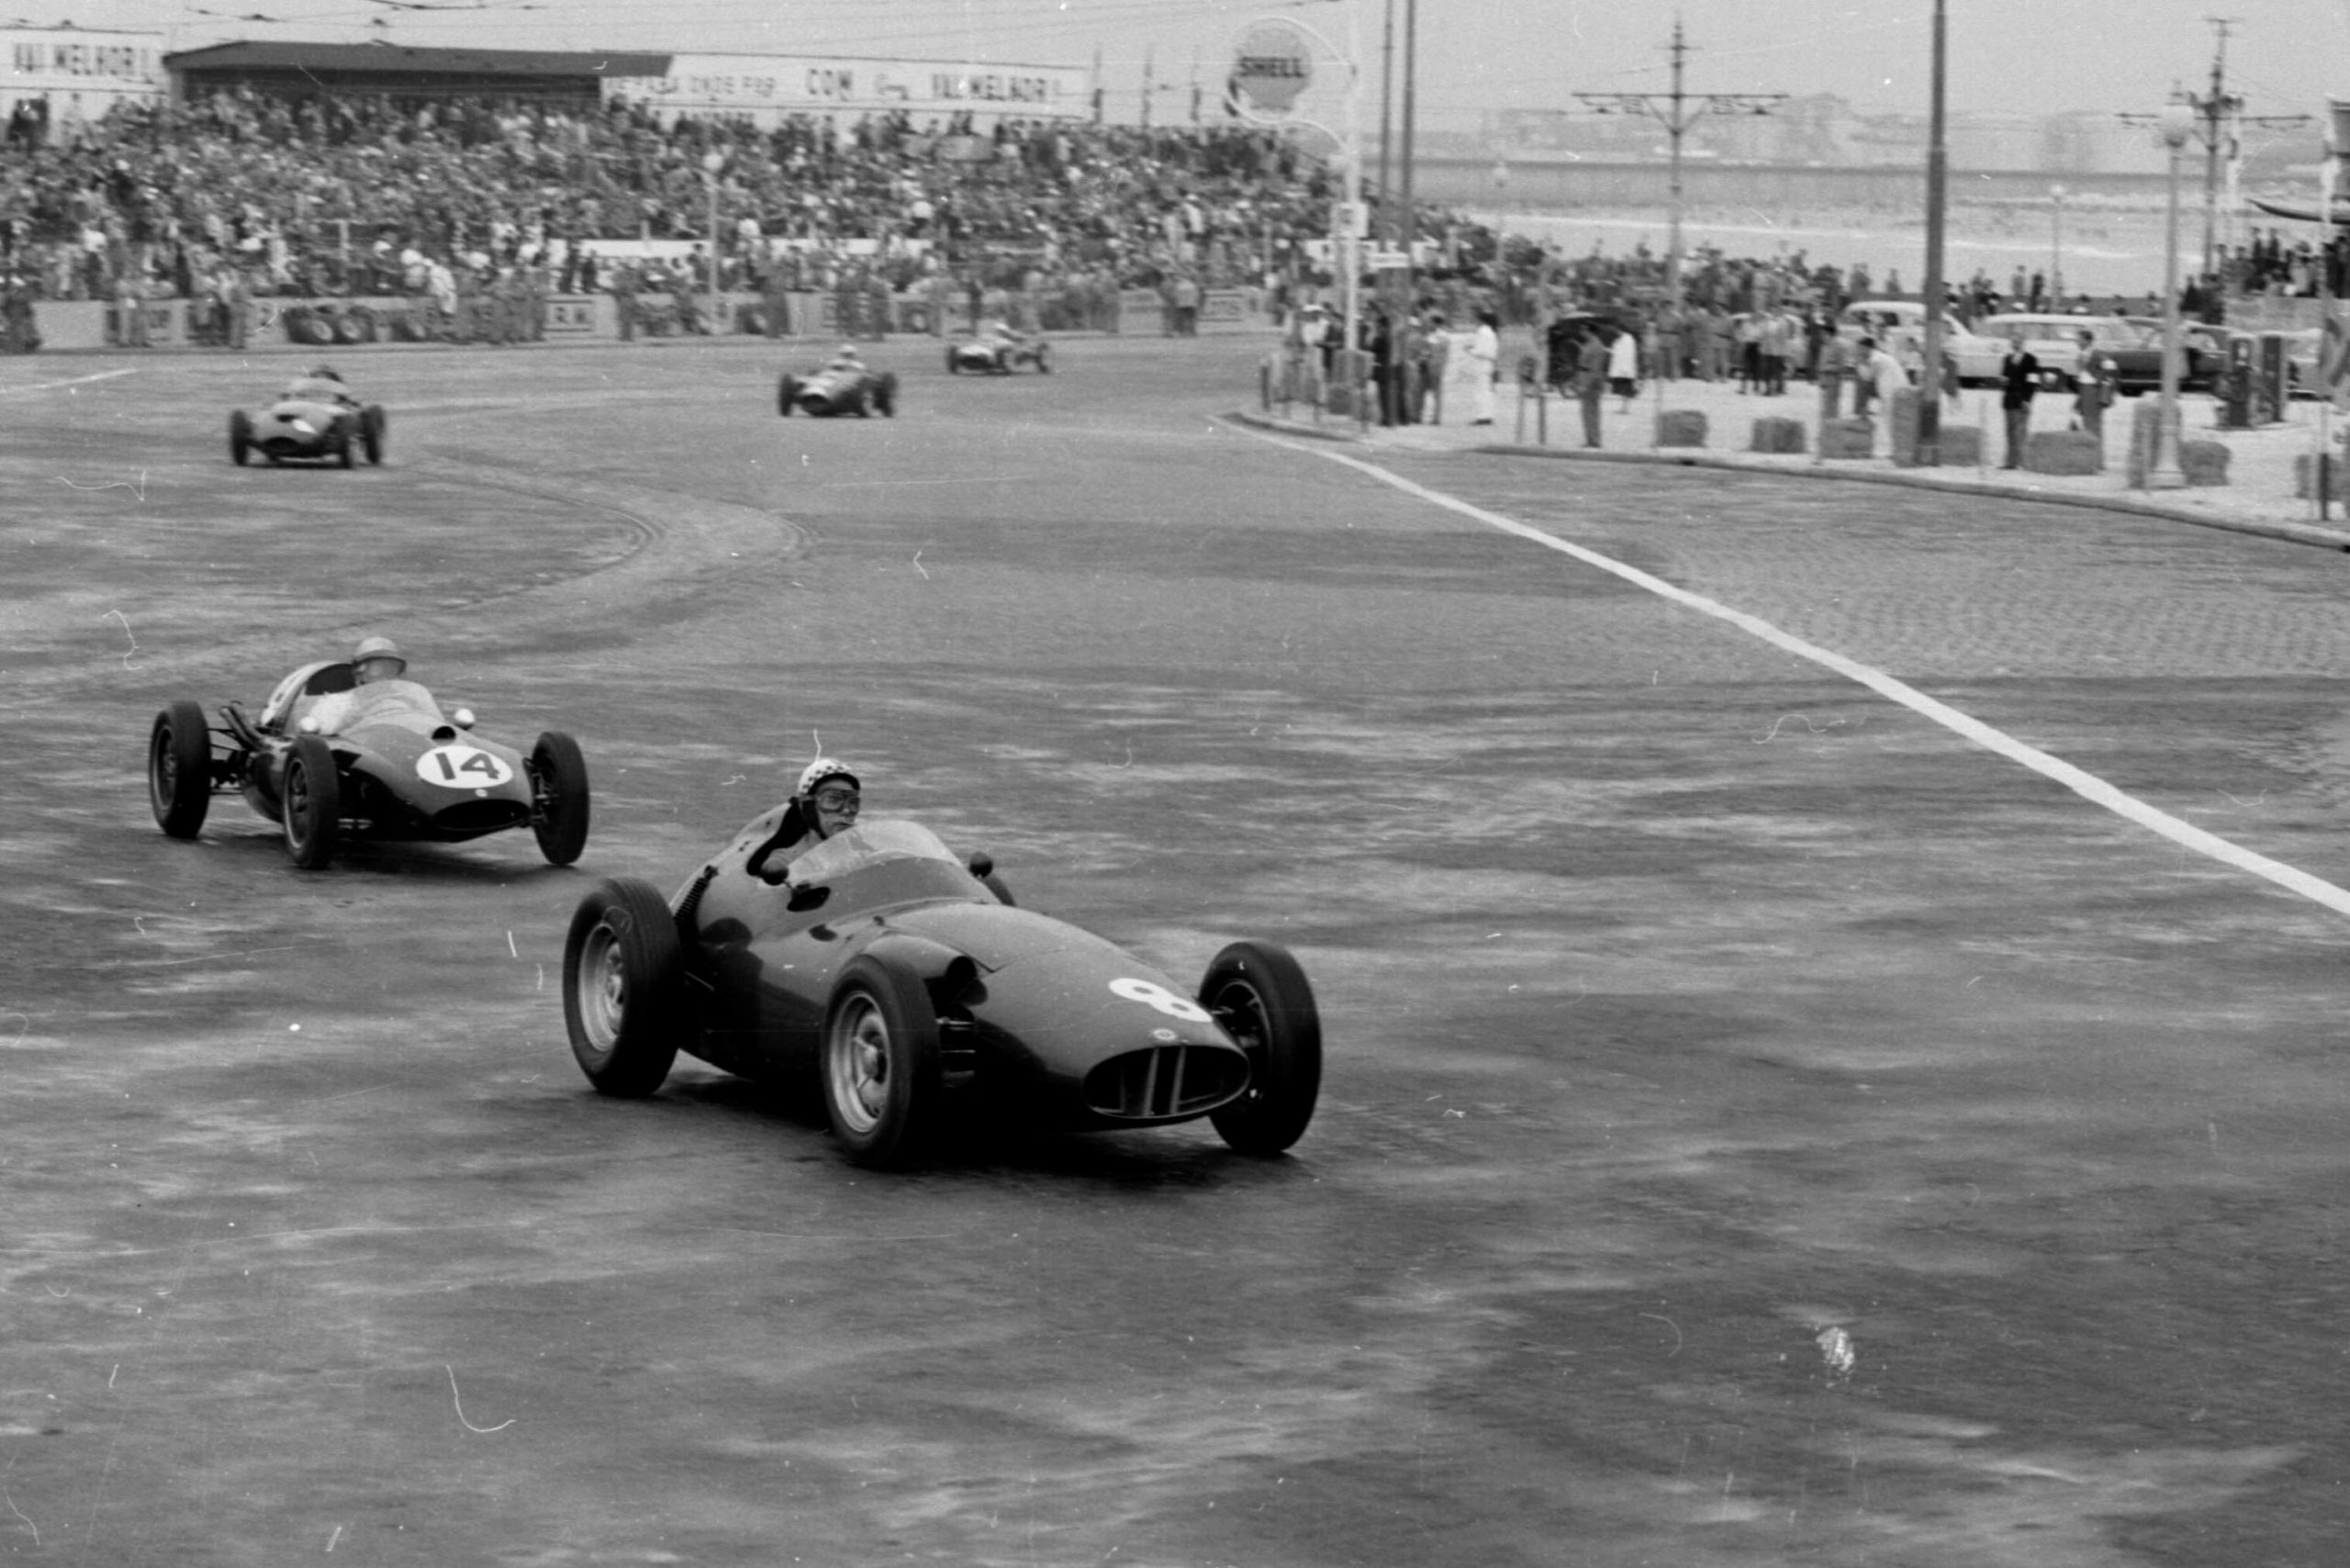 Jean Behra in his BRM P25 leads Jack Brabham driving a Cooper T45-Climax.